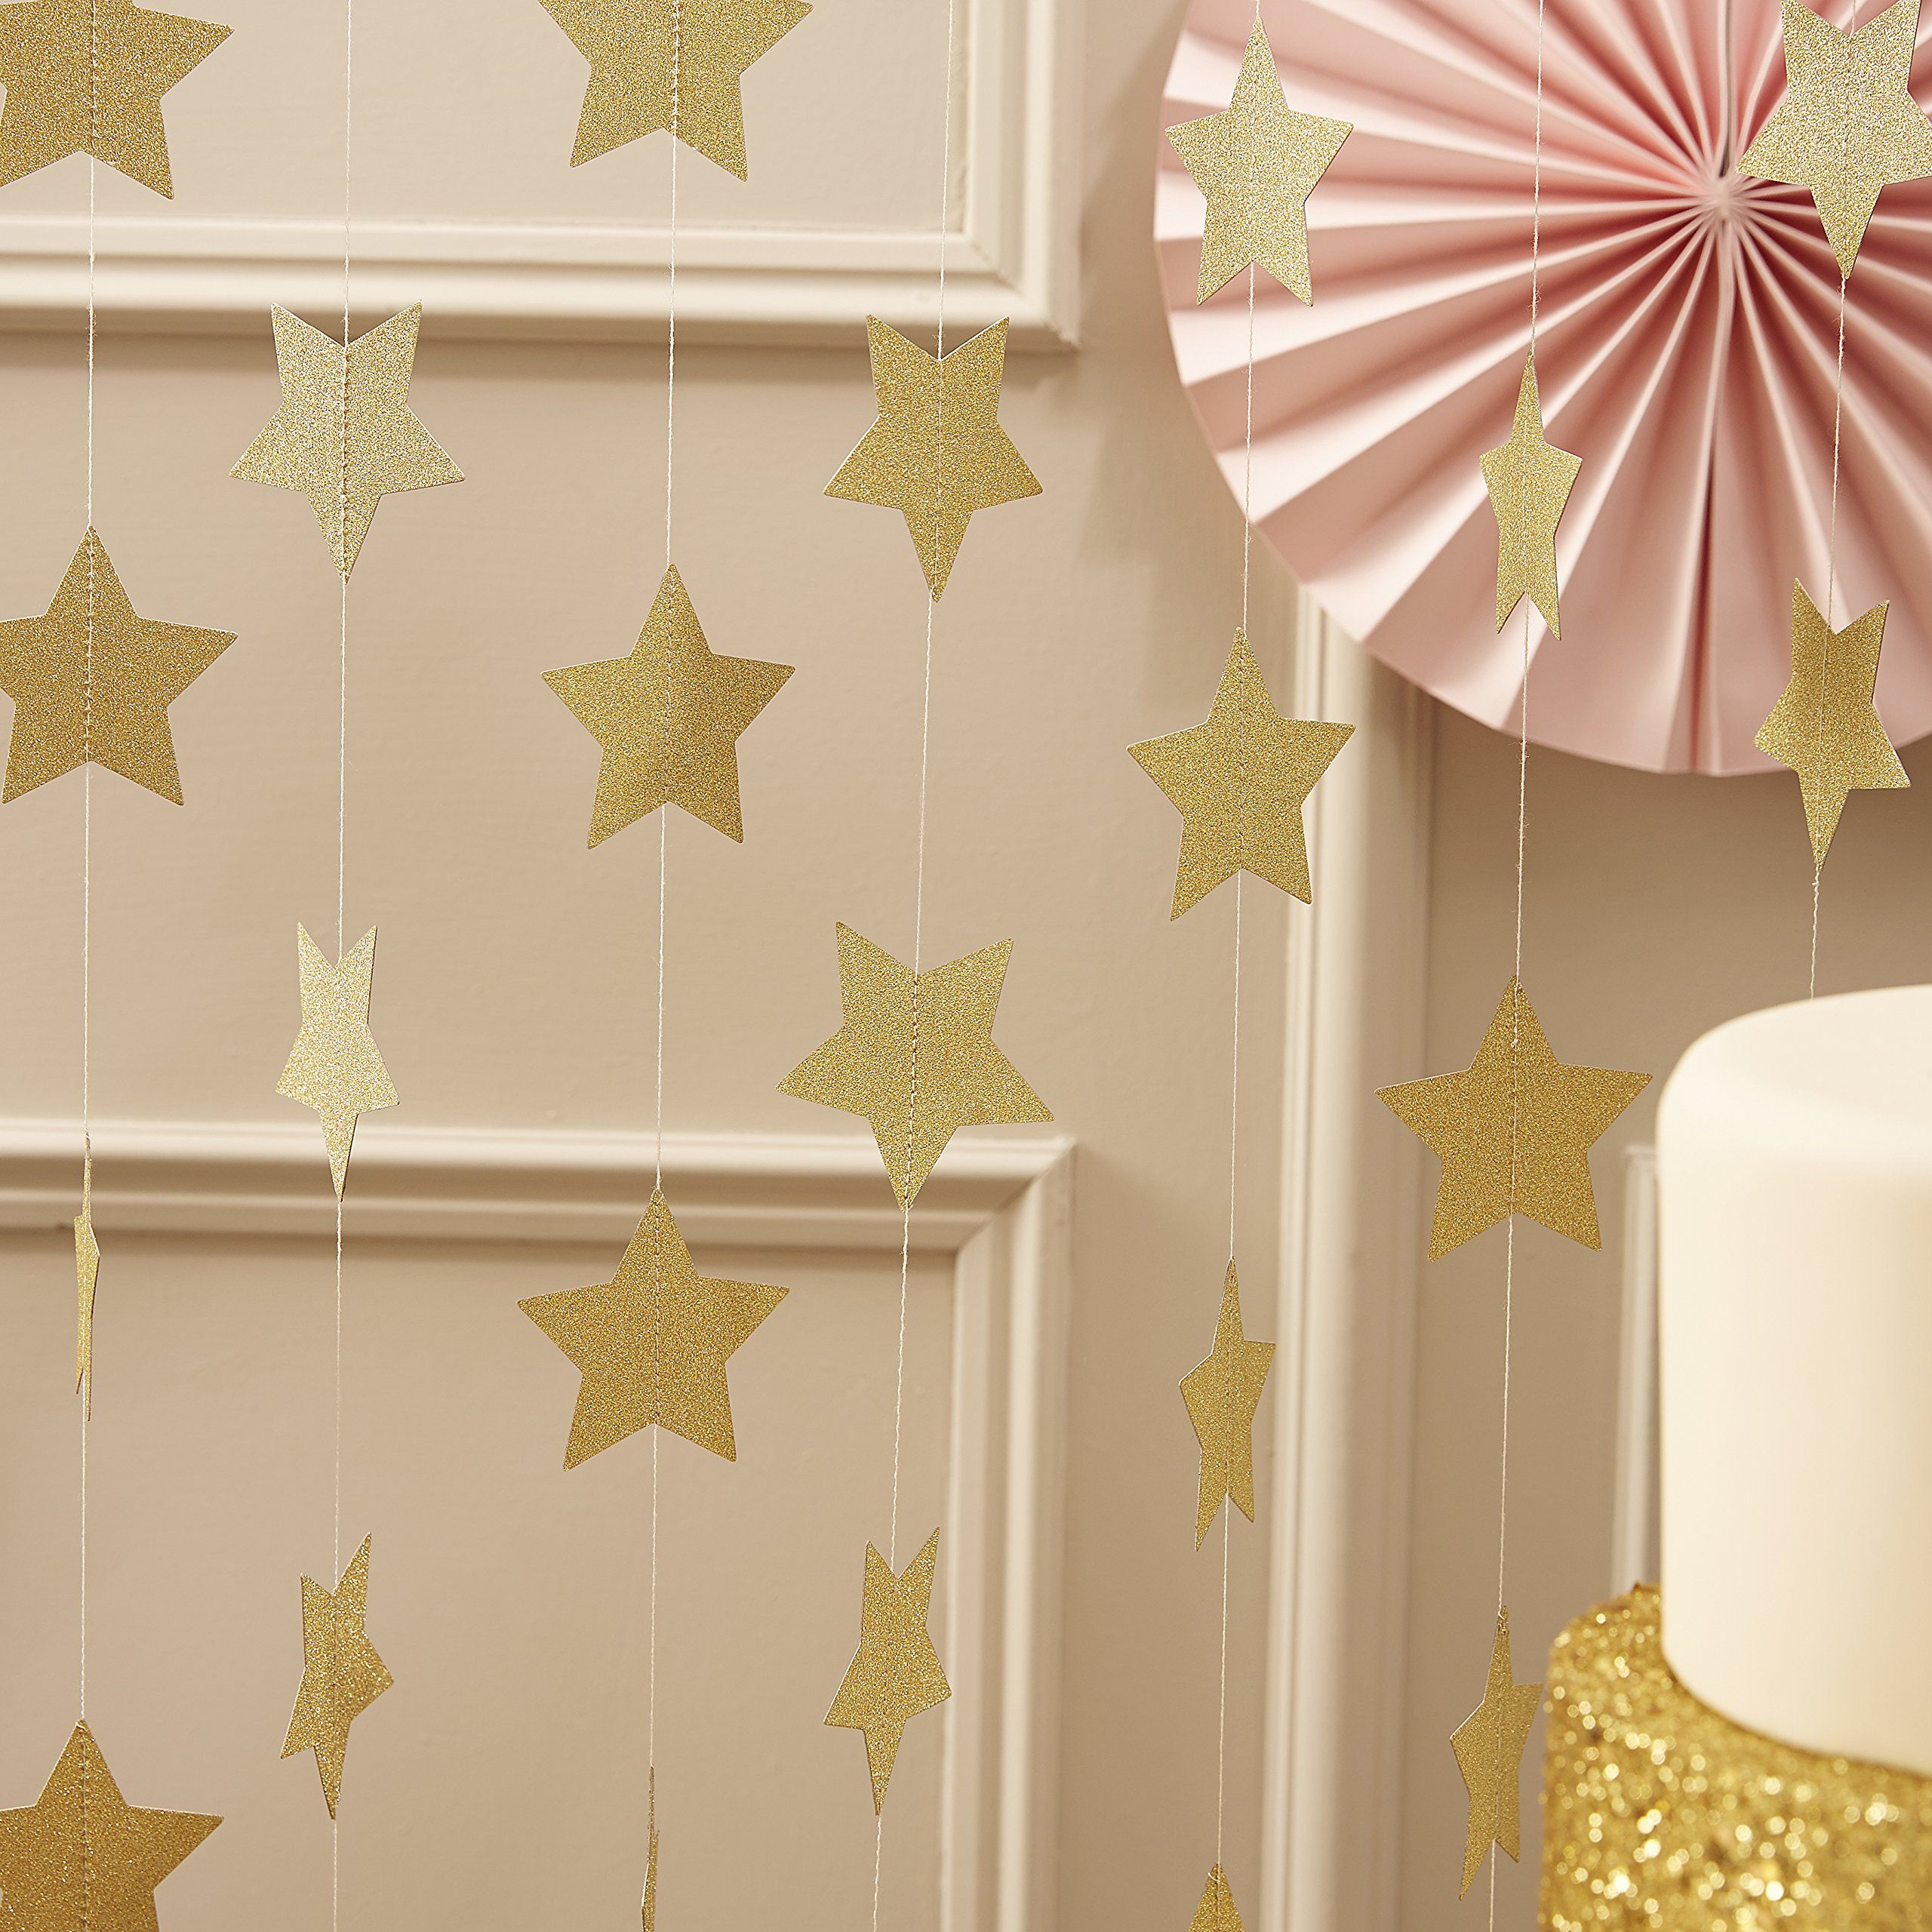 Ginger Ray Gold Sparkling Star Garland Bunting For Weddings Or